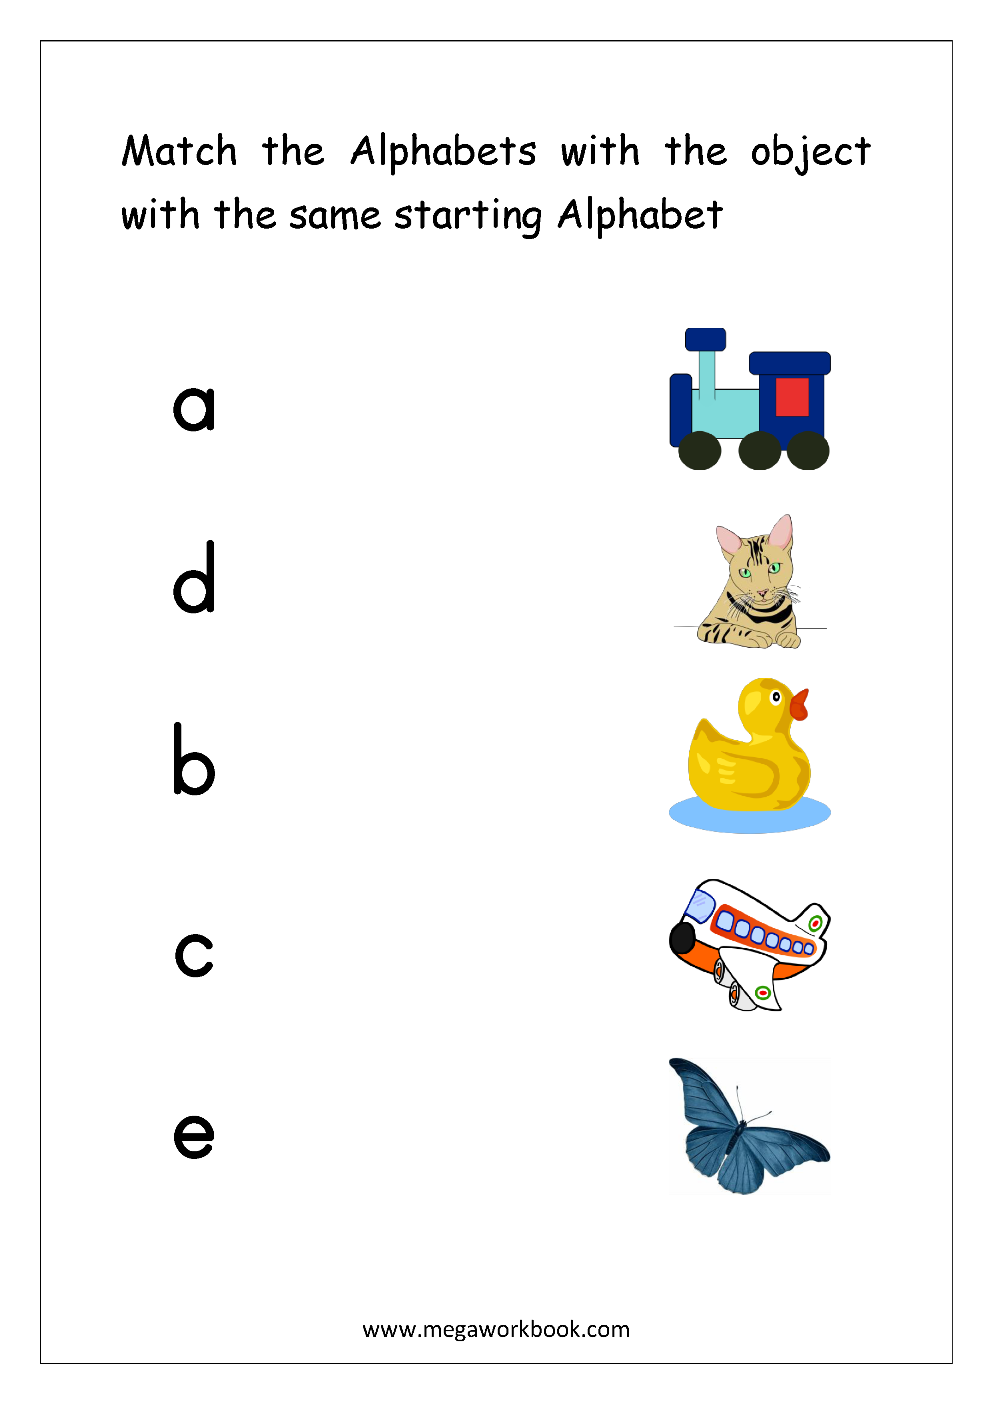 Free English Worksheets - Alphabet Matching - Megaworkbook intended for Alphabet Matching Worksheets For Preschoolers